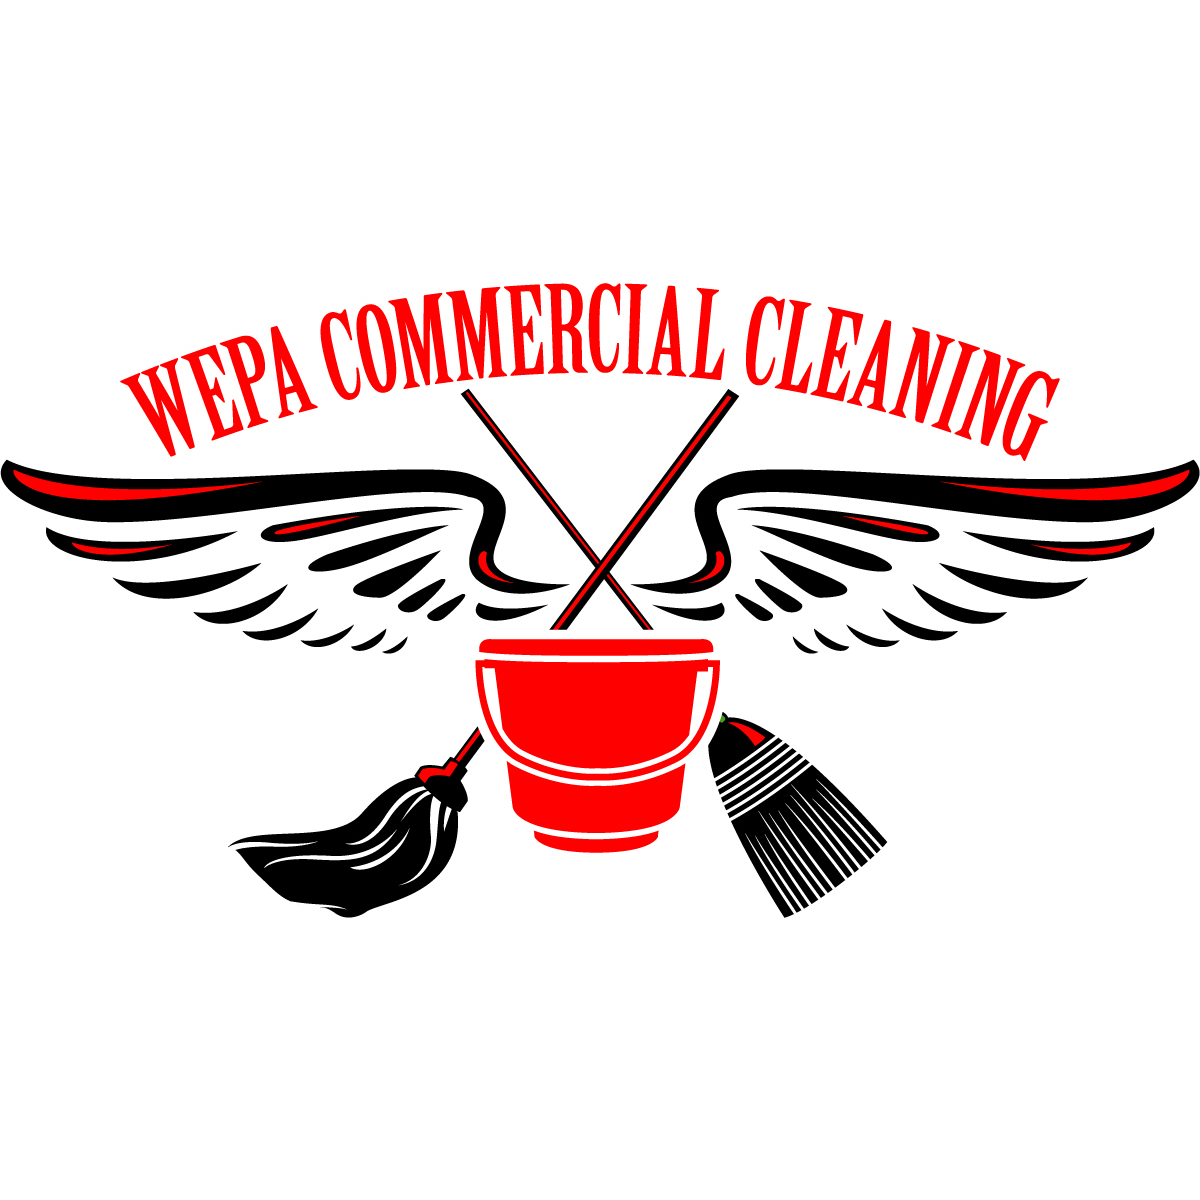 Wepa Commercial Cleaning